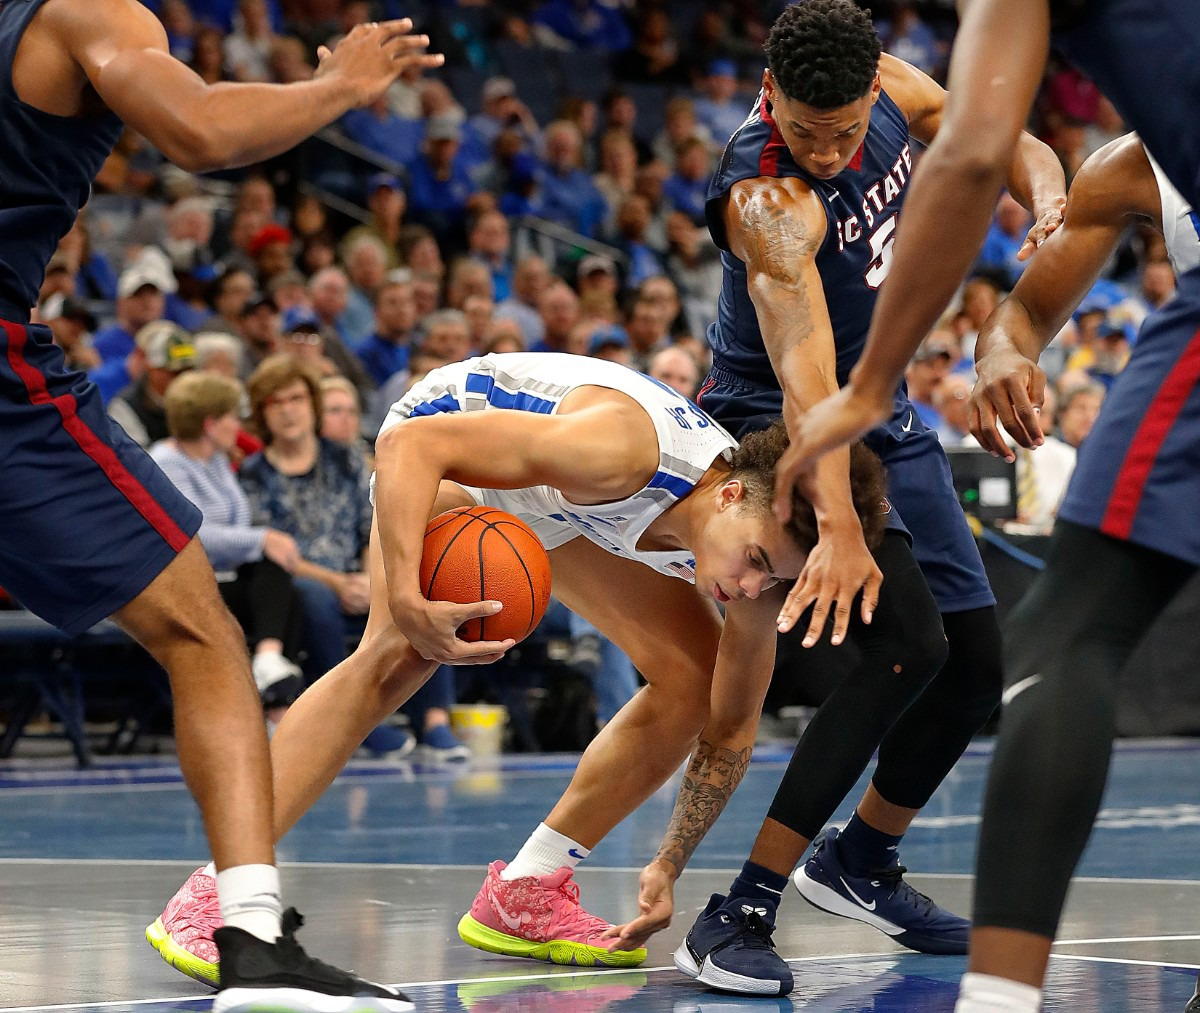 <strong>Guard Lester Quinones (with ball) scoops up a loose ball against South Carolina State Nov. 5 at FedExForum.</strong> (Mark Weber/Daily Memphian)